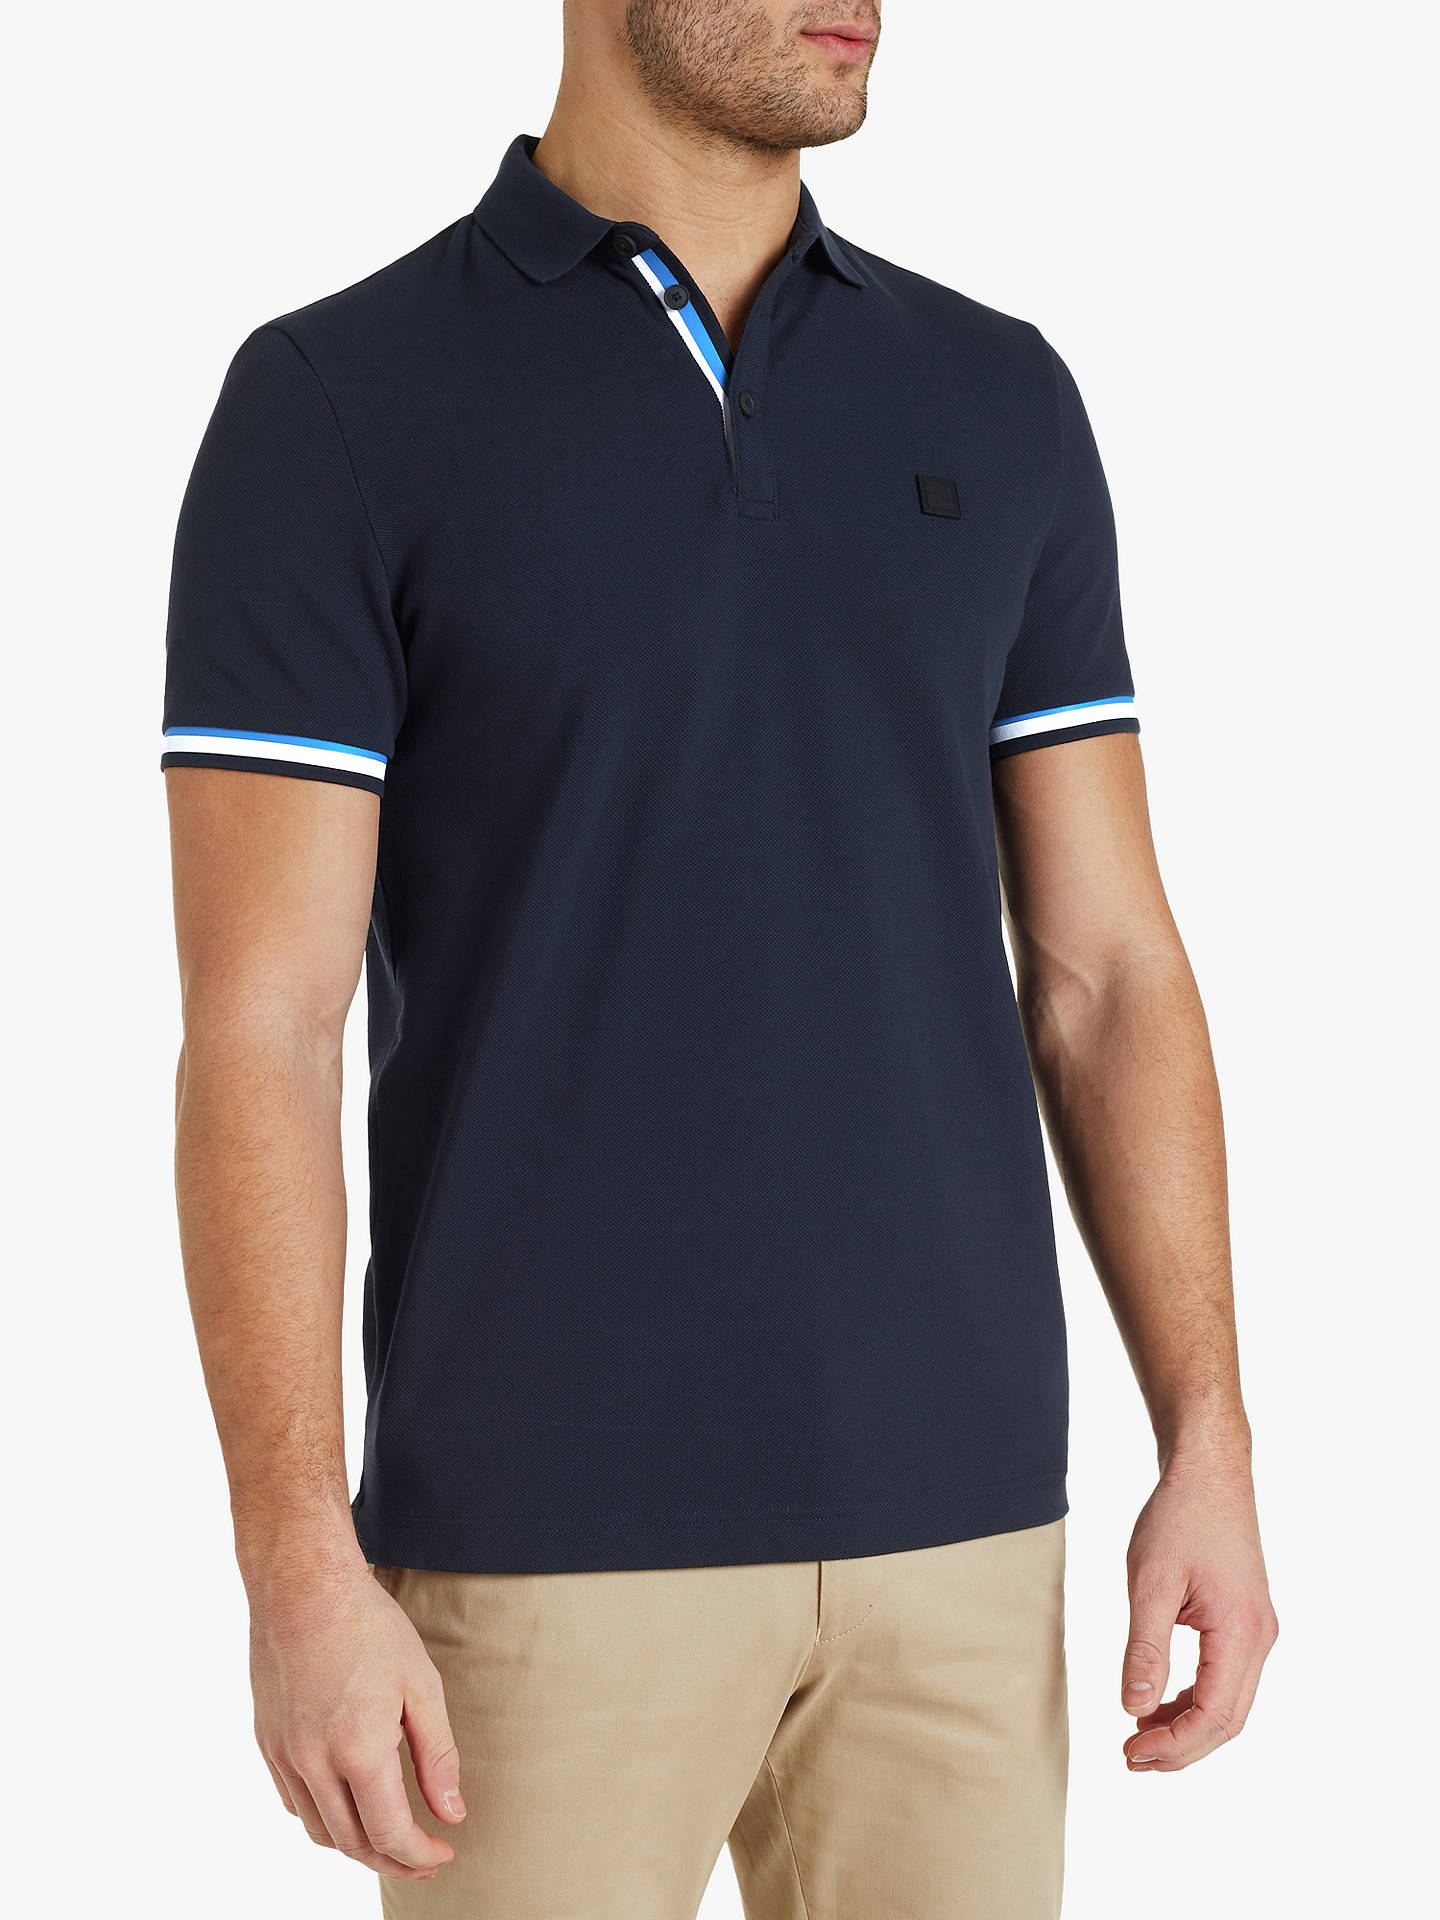 da9d6544 Buy BOSS Printcat Polo Shirt, Dark Blue, XL Online at johnlewis.com ...